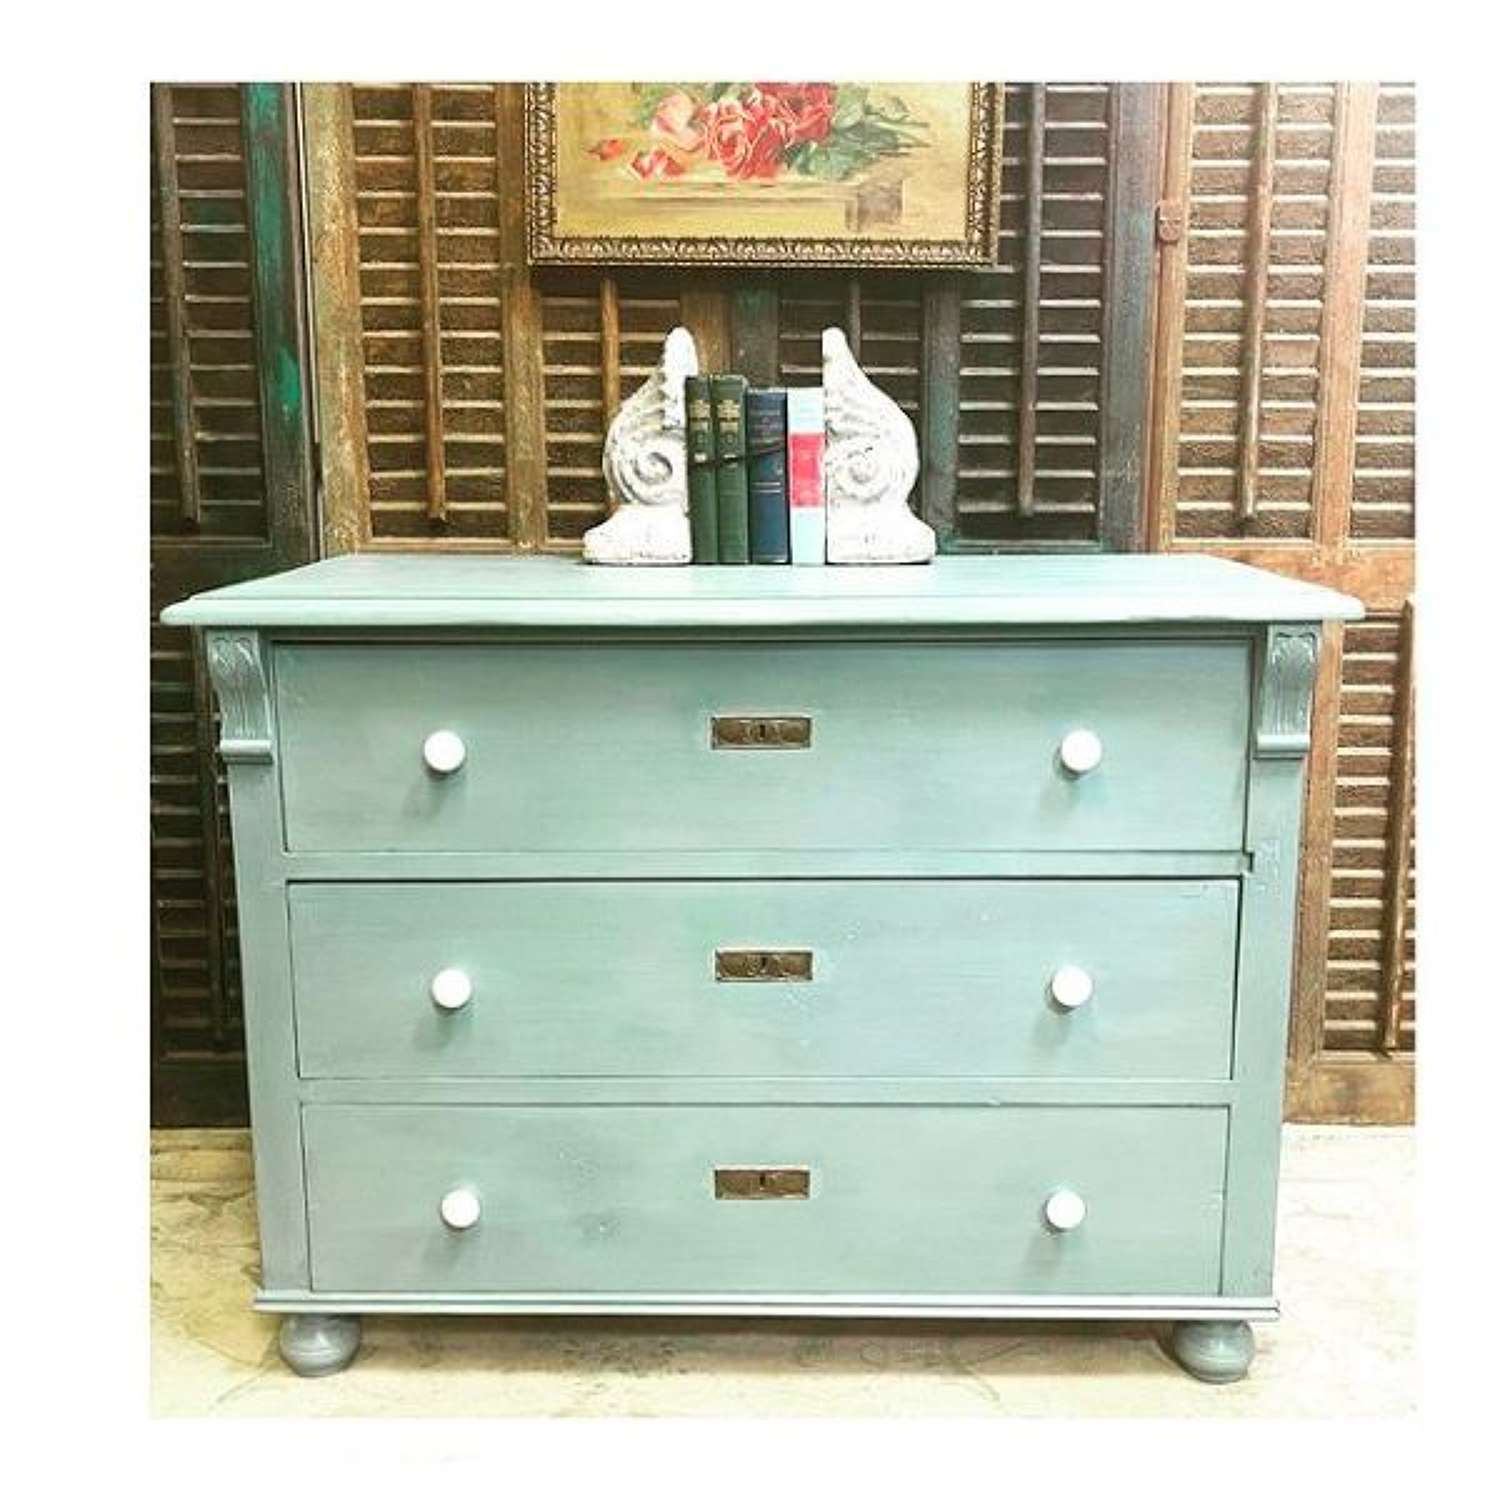 Dreamy Dutch chest of drawers